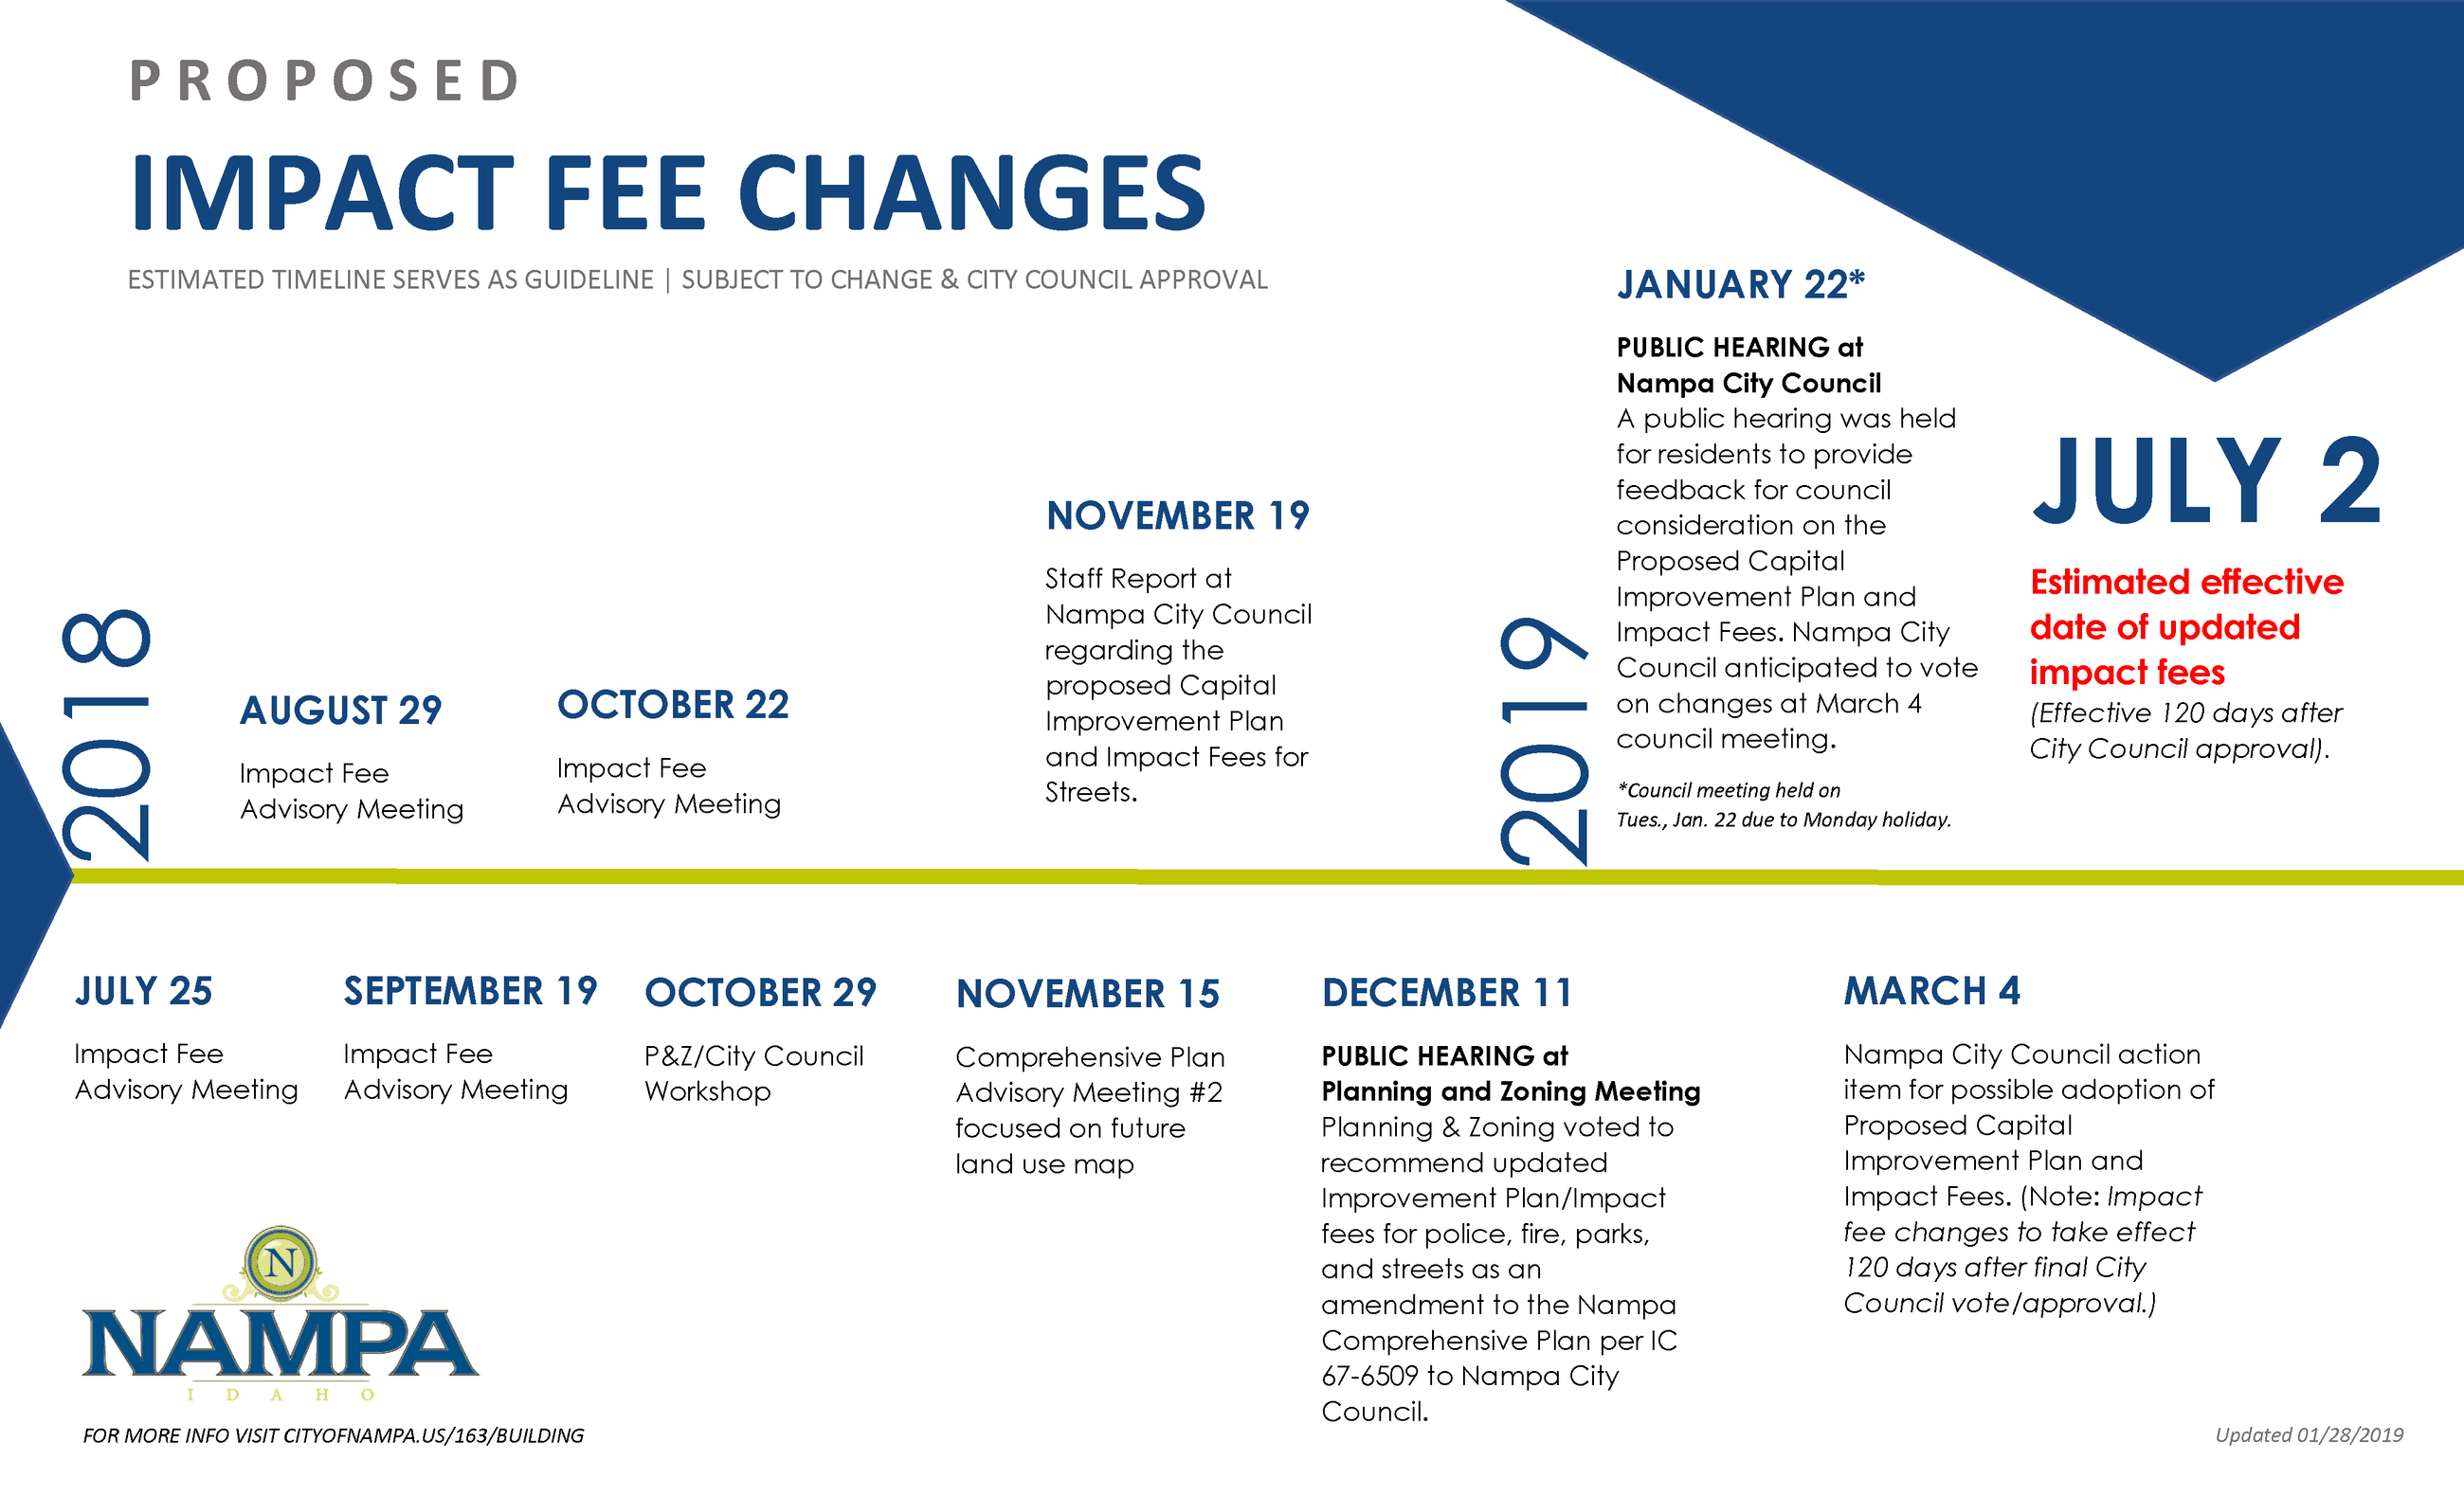 Impact Fees estimated timeline proposal 2019 updated